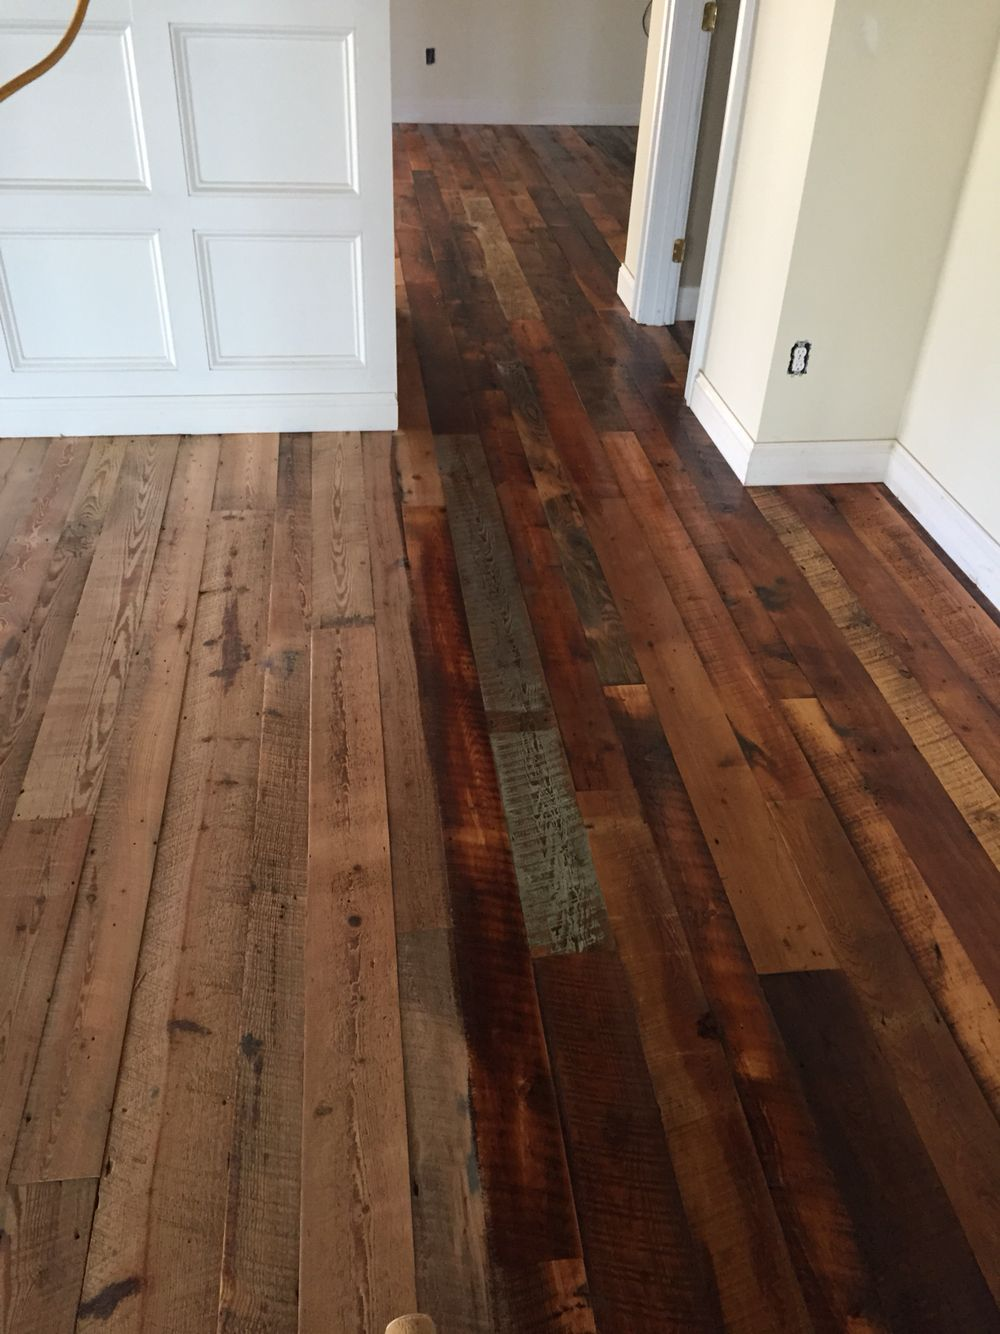 Flooring eclectic hardwood flooring boston by paris ceramics - Explore Hardwood Flooring And More